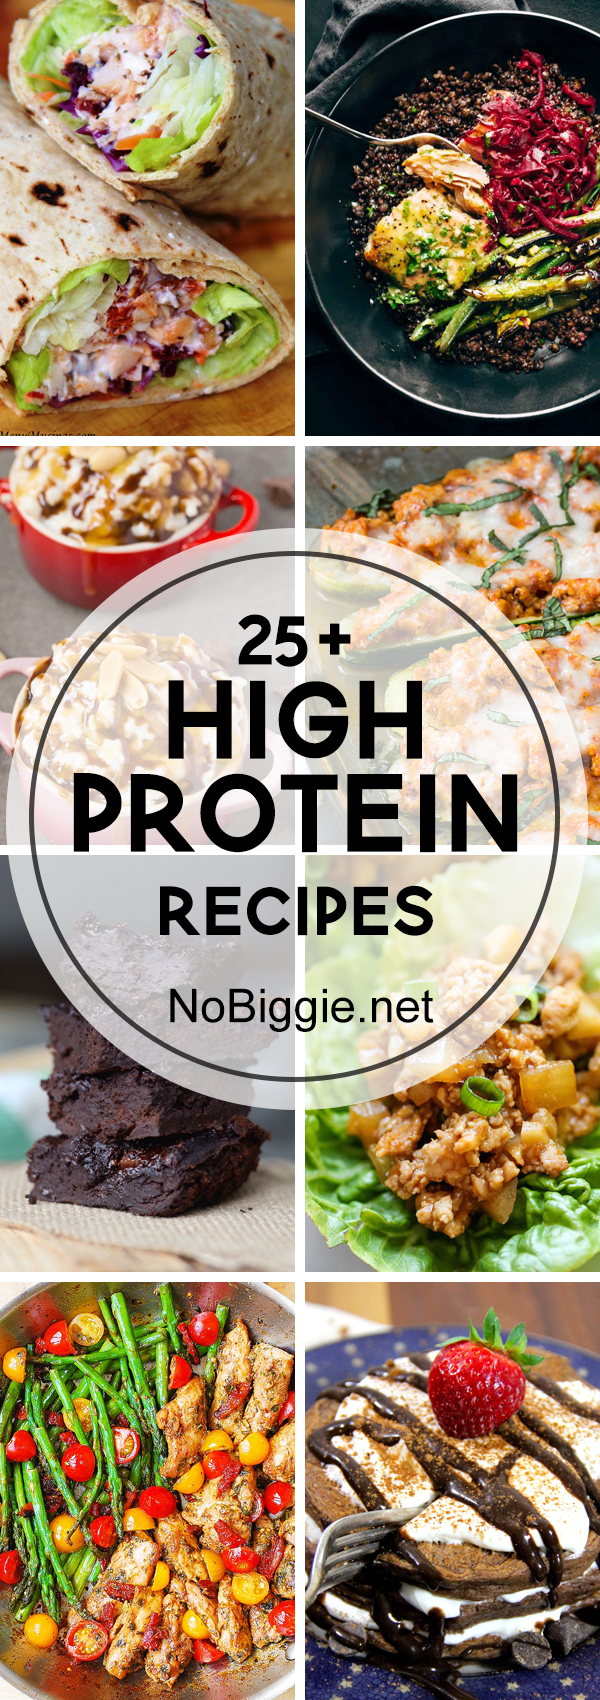 25 High Protein Recipes Nobiggie